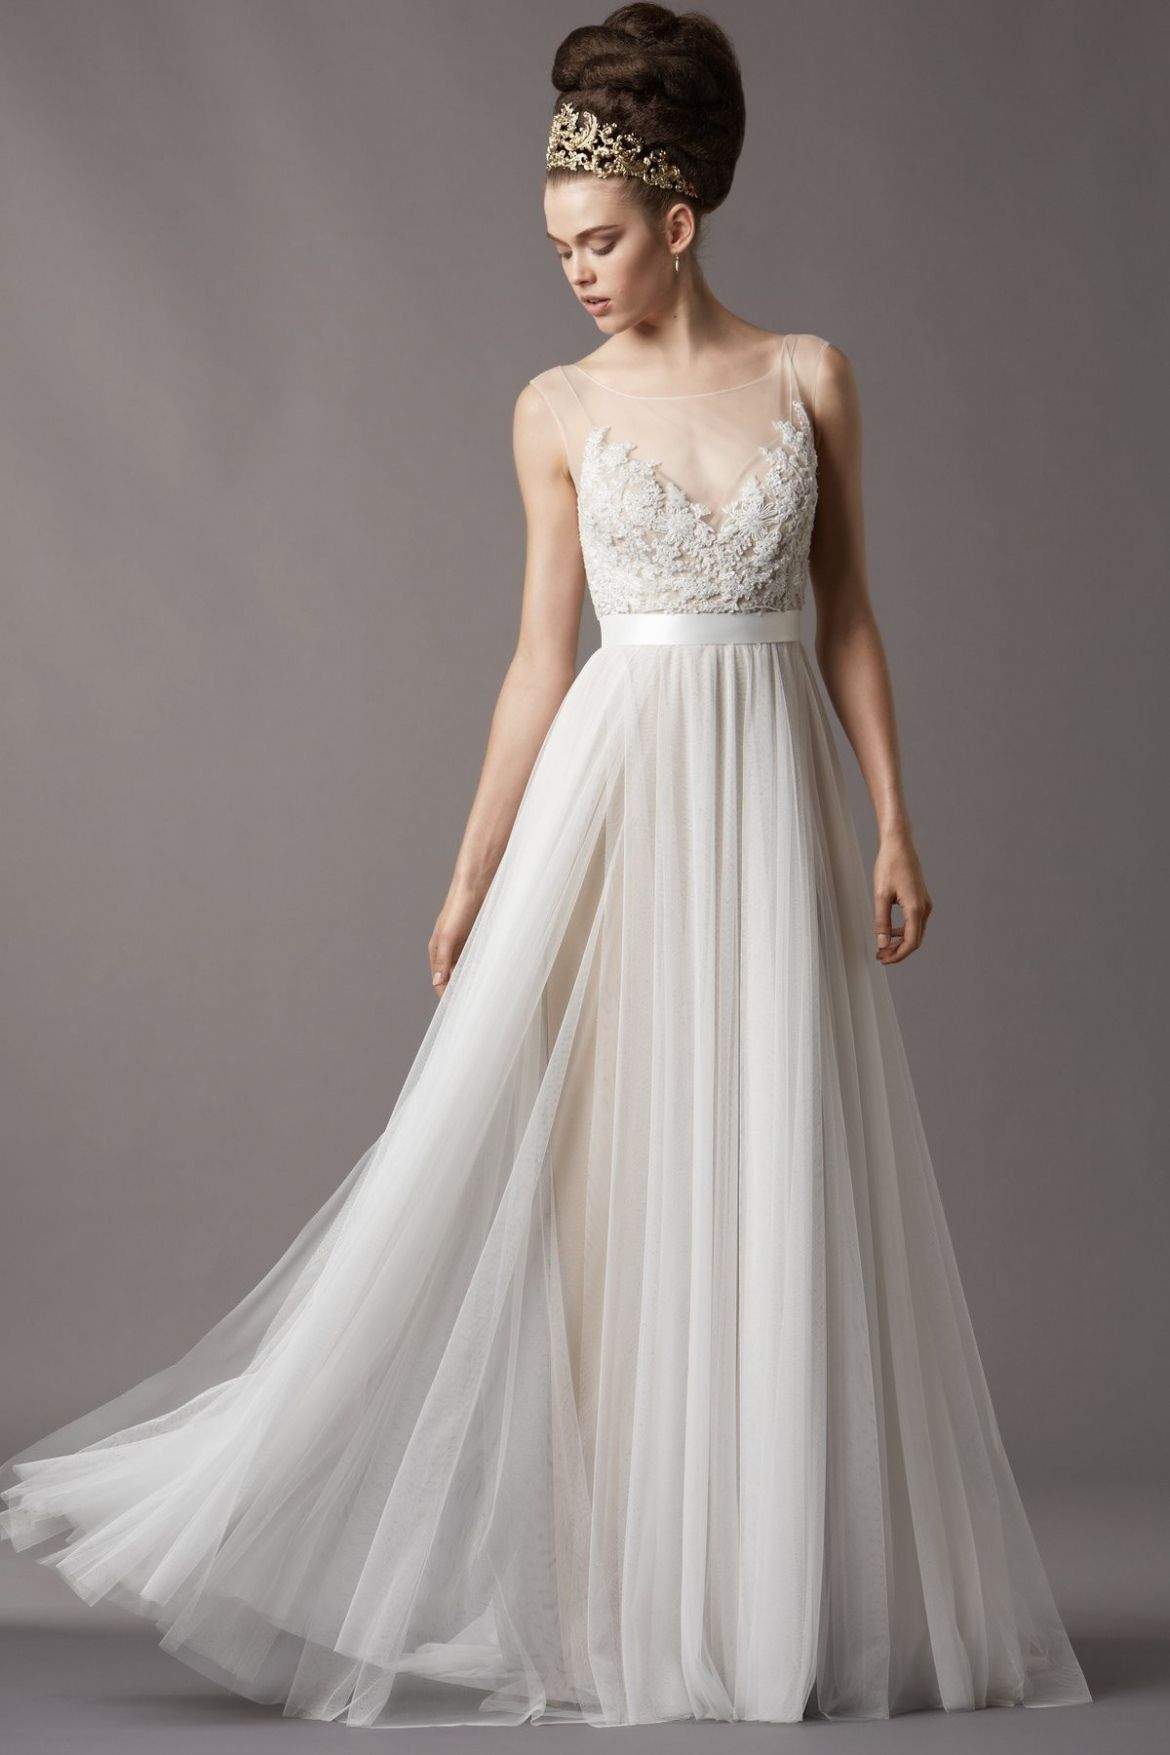 2018 Tulle A Line Wedding Dress - Dresses for Wedding Party Check ...